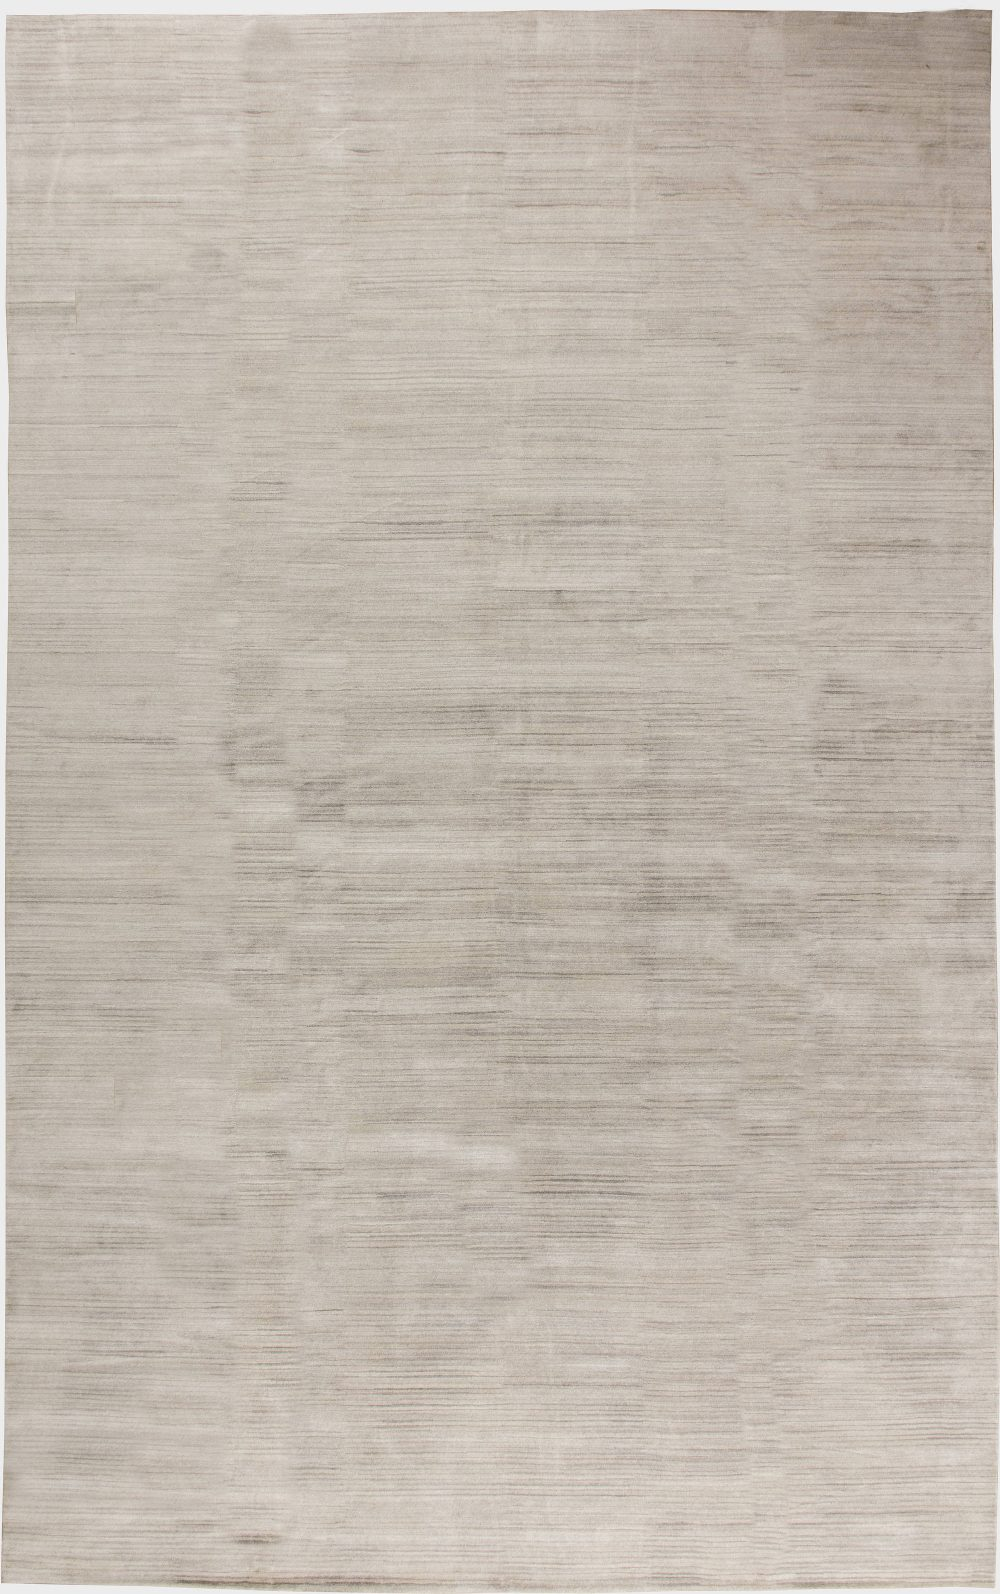 Oversized Contemporary Rug N11358